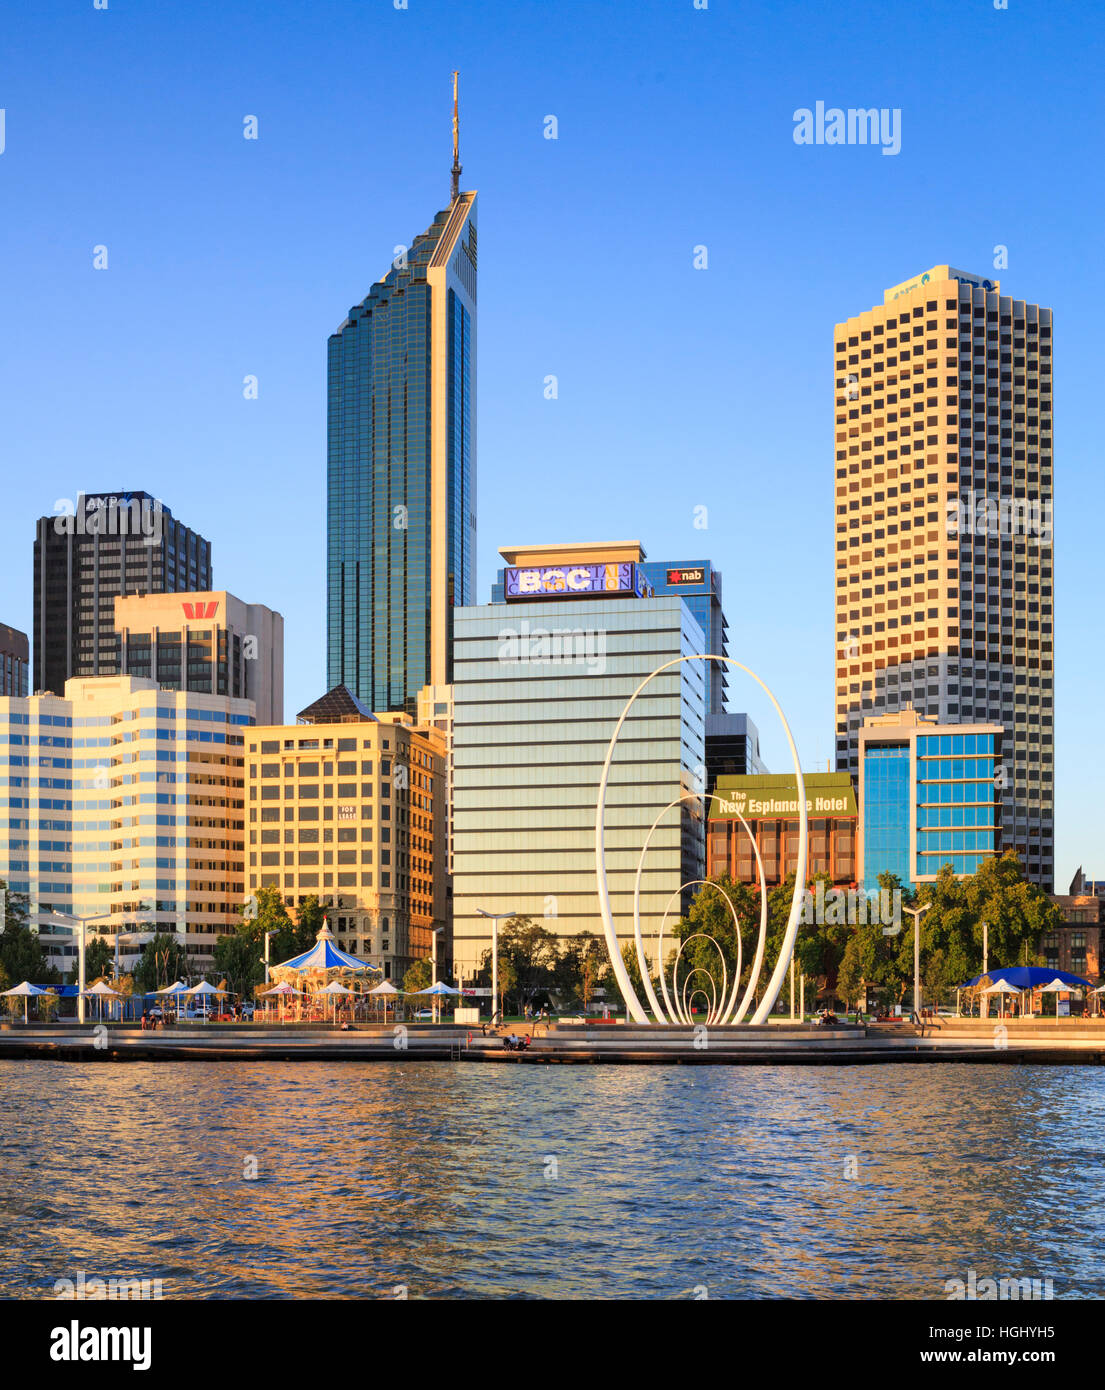 Elizabeth Quay and Perth city. Australia - Stock Image